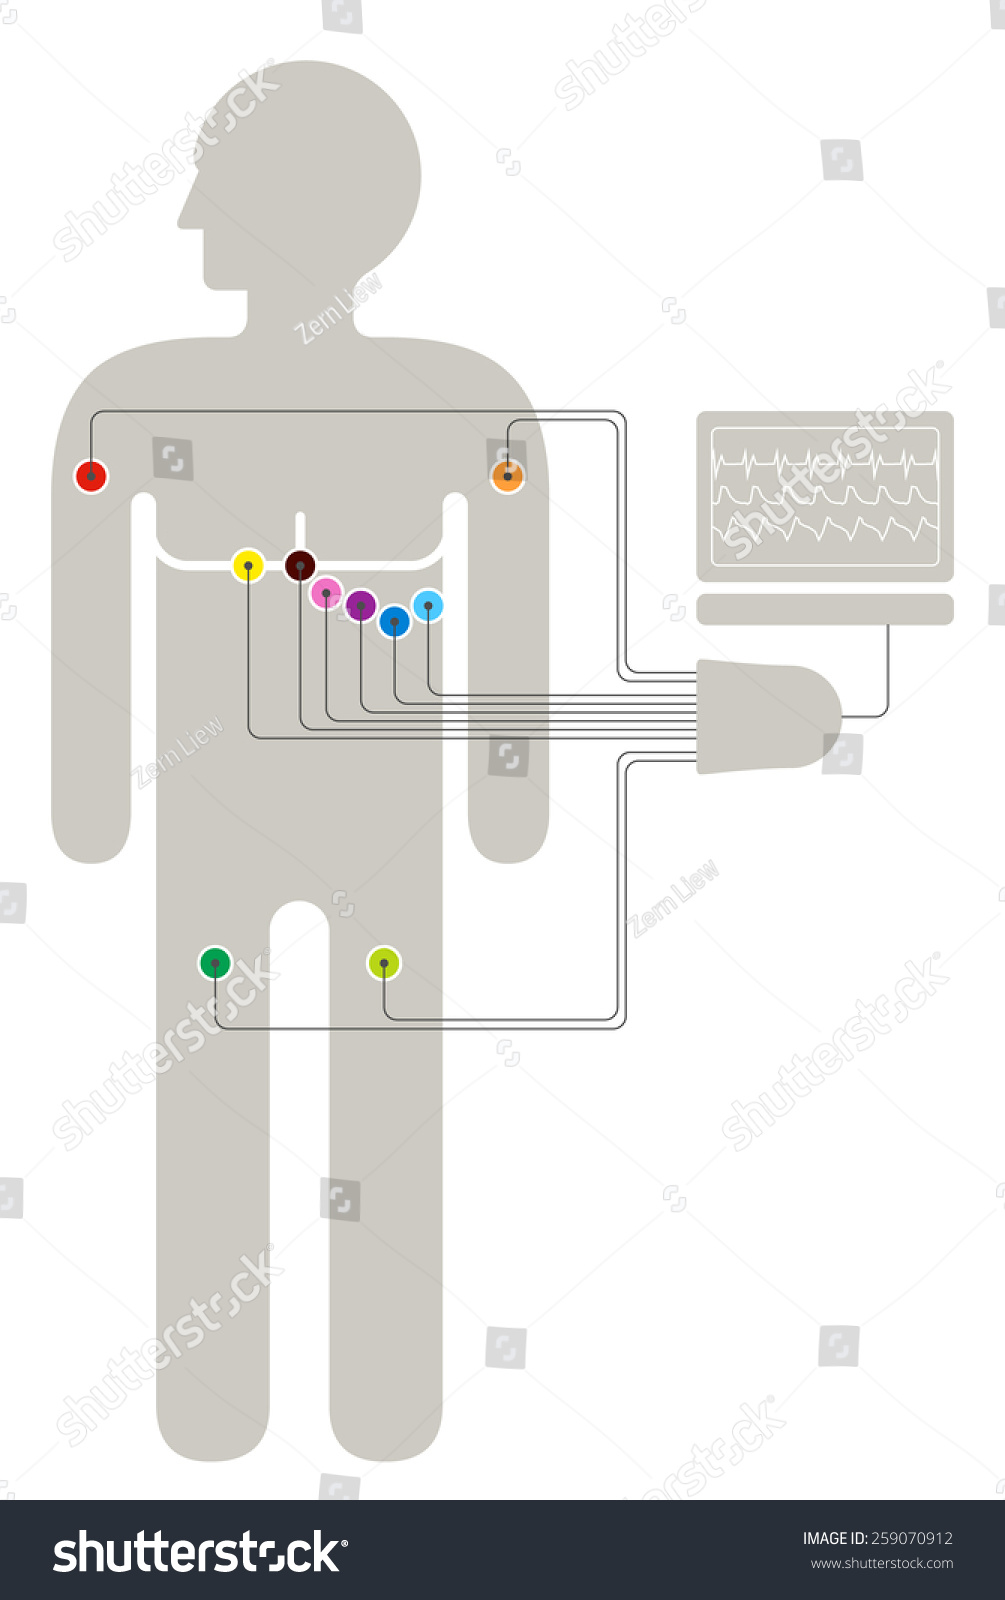 ecg wiring diagram showing 6 2 2 colour coded sensors connected to save to a lightbox